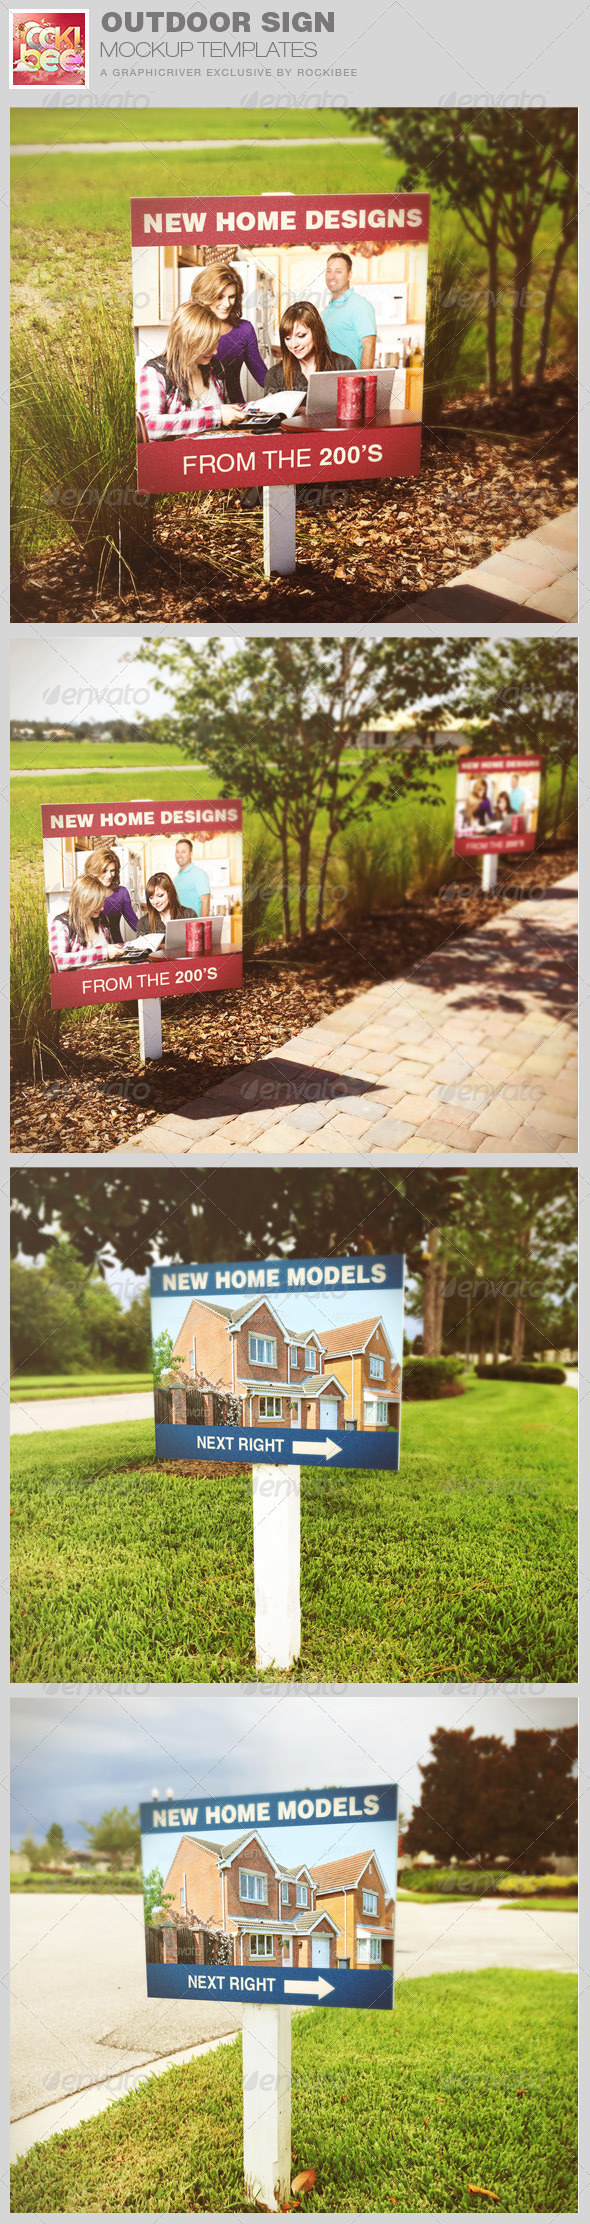 outdoor sign mockup templates by rockibee graphicriver